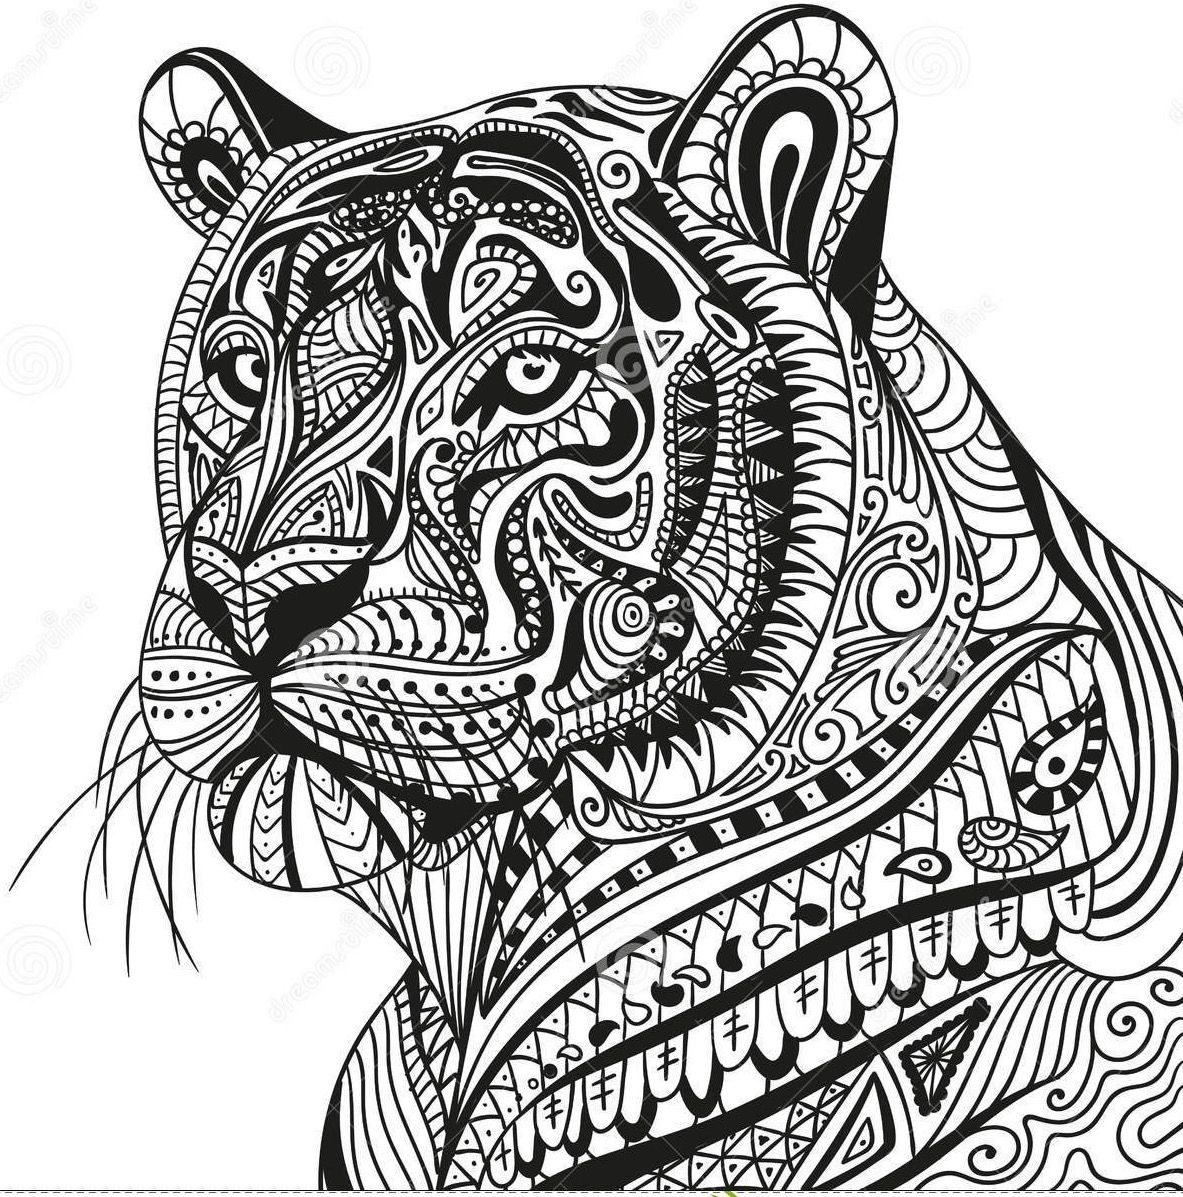 Pin By Quotidian Librarian On Your Pinterest Likes Mandala Coloring Animal Wall Decals Mandala Coloring Pages